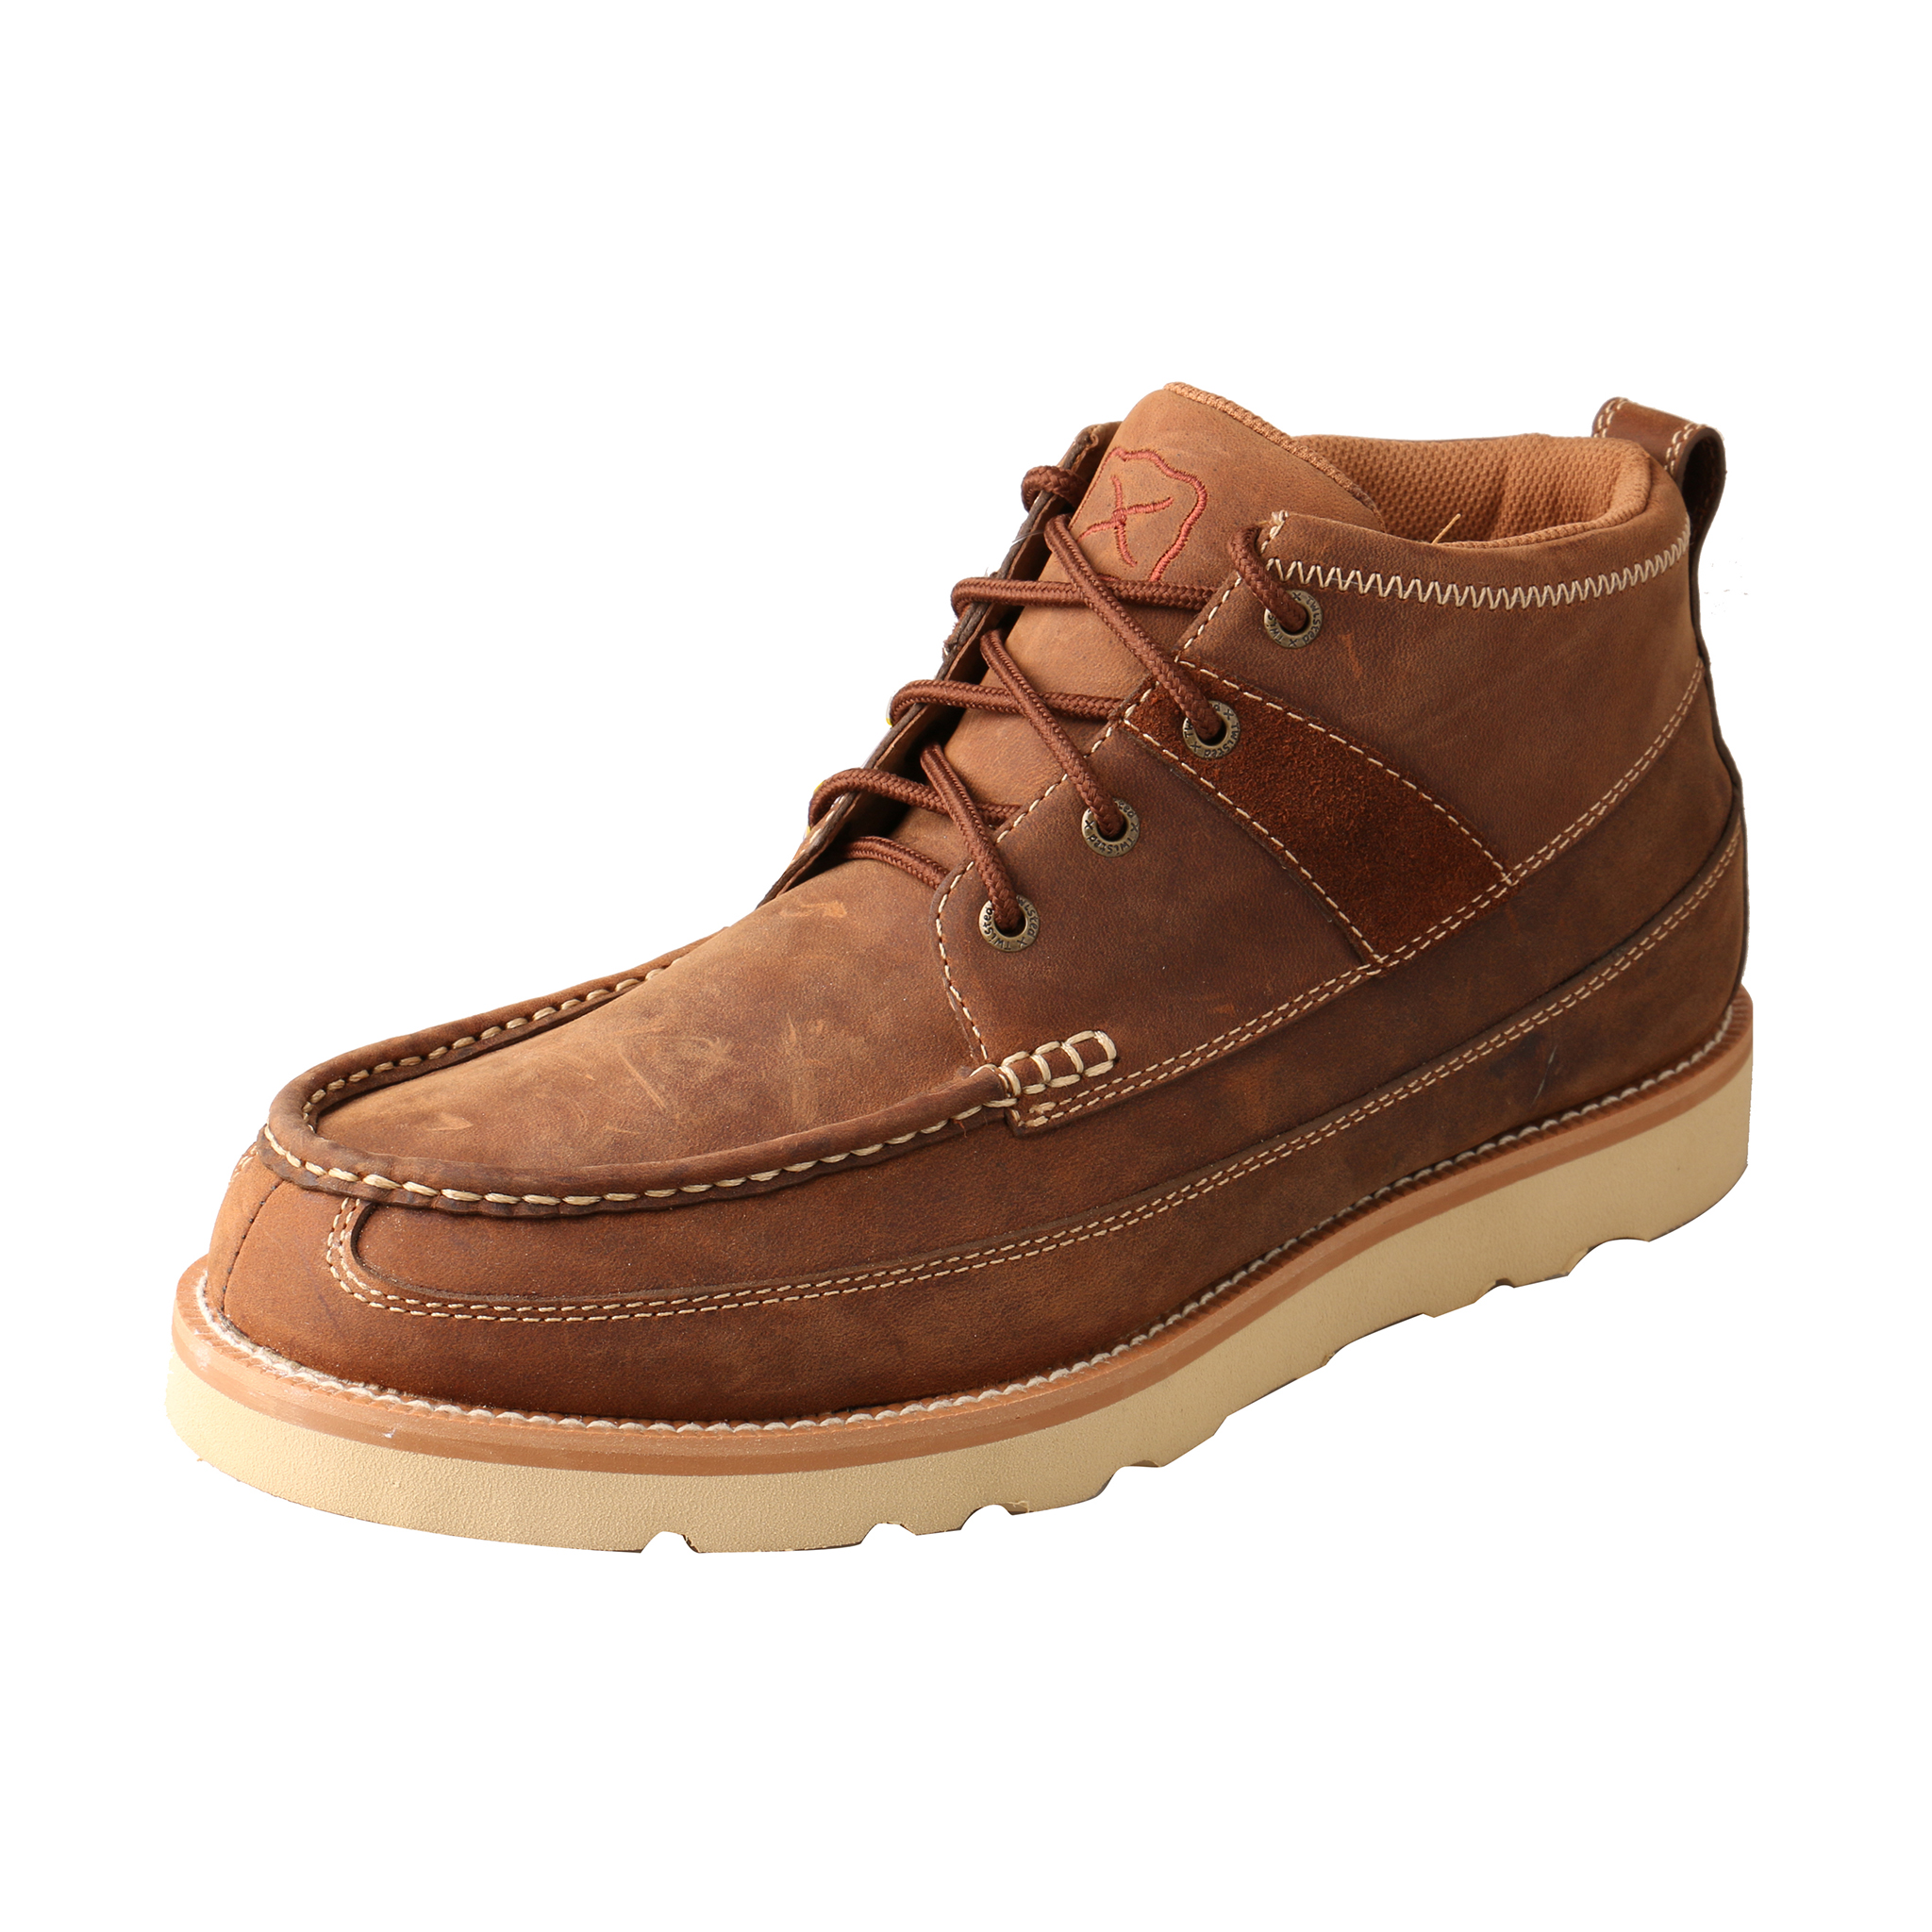 Men's Casual Shoe – Oiled Saddle-Twisted X